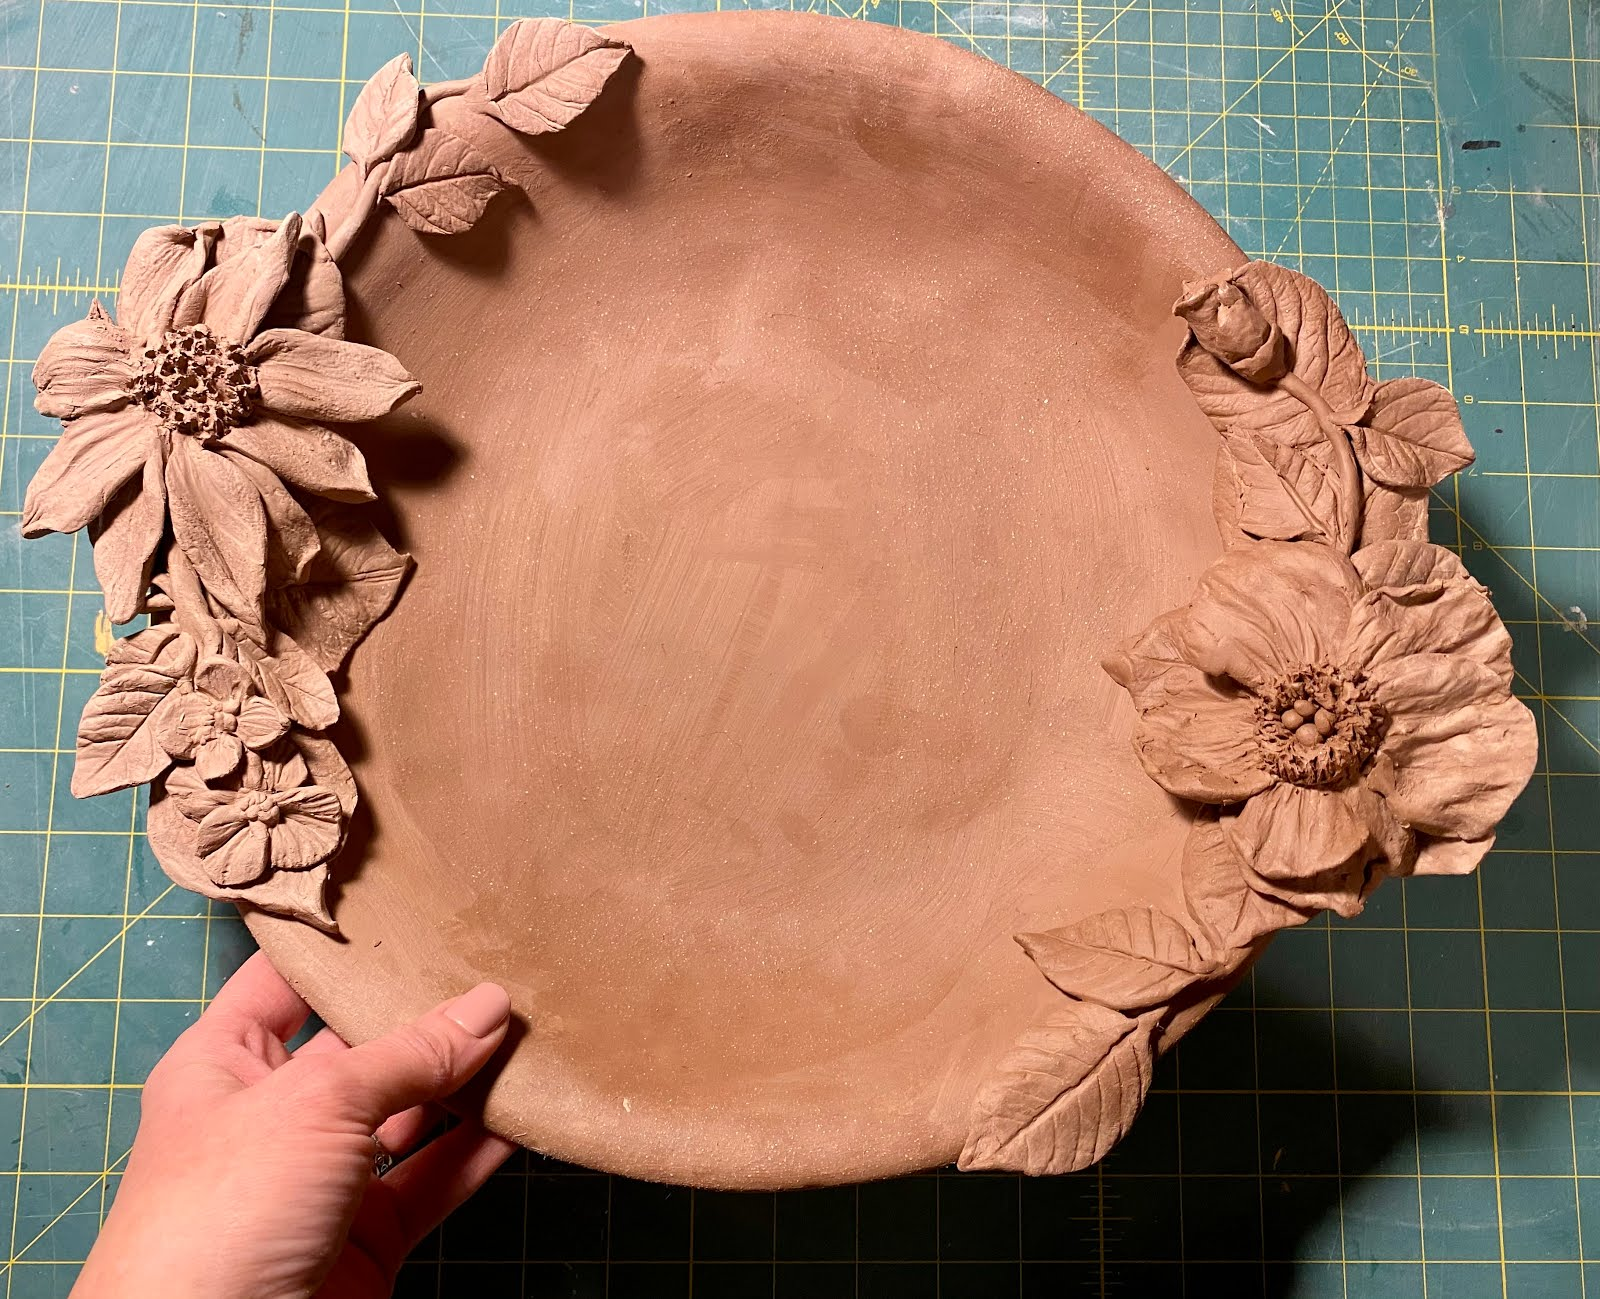 Clay Bowl Before If is Fired